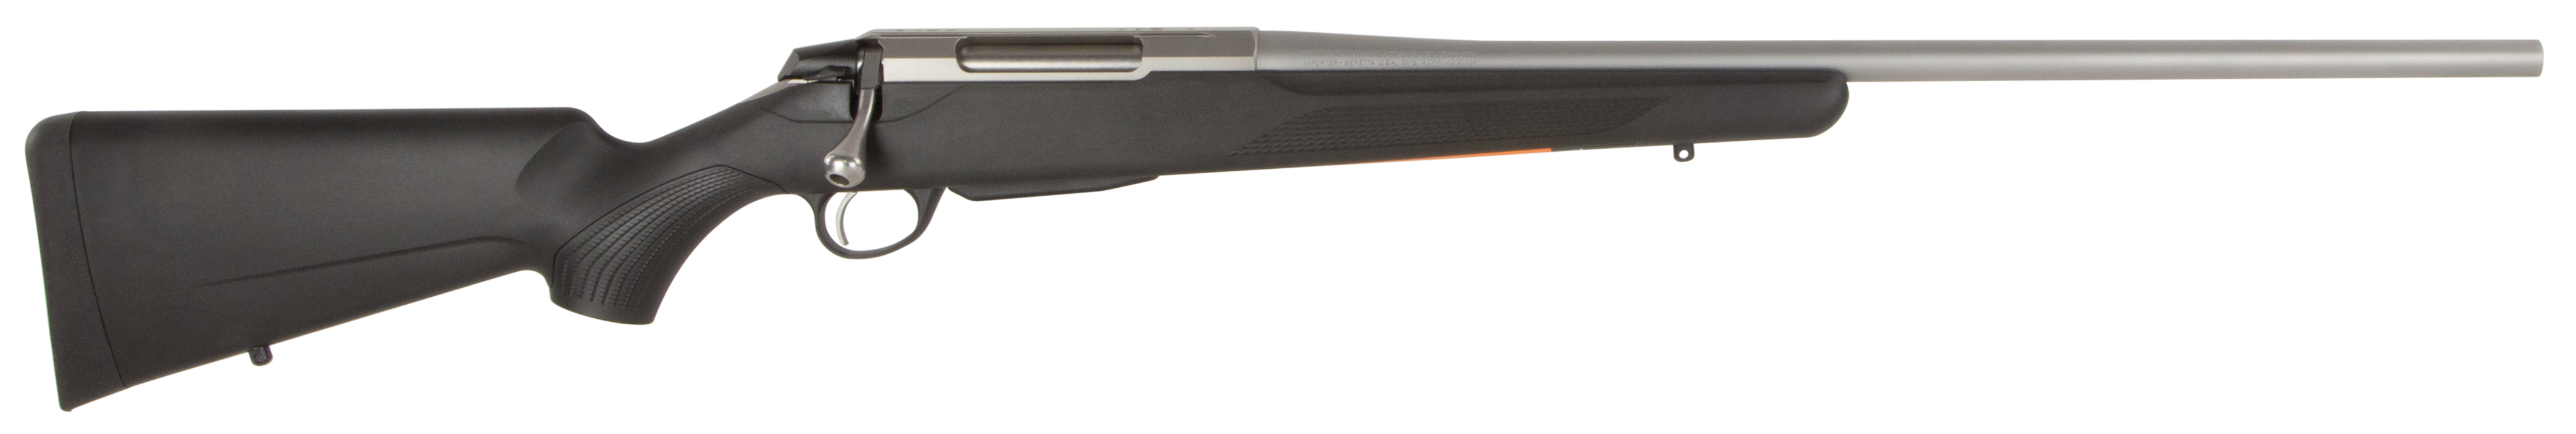 Tikka T3x Lite Stainless 7mm Rem Mag 24.3